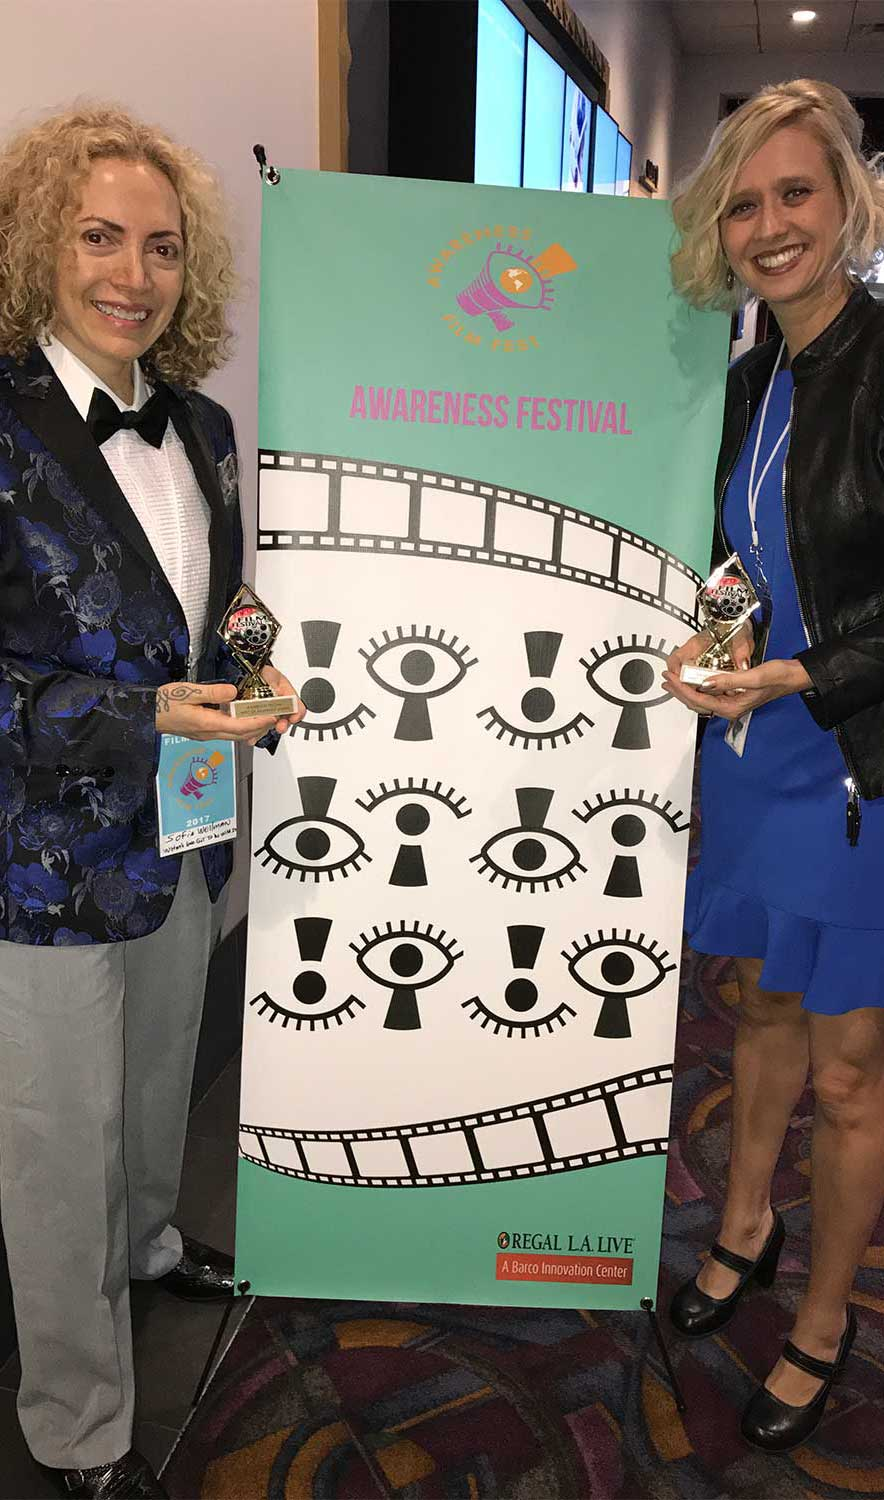 Sofia Wellman - Meets Fellow Filmmaker - Whats Love Got To Do With It - Film by Sofia Wellman - Merit Award Of Awareness - The Awareness Film Festival - 2017